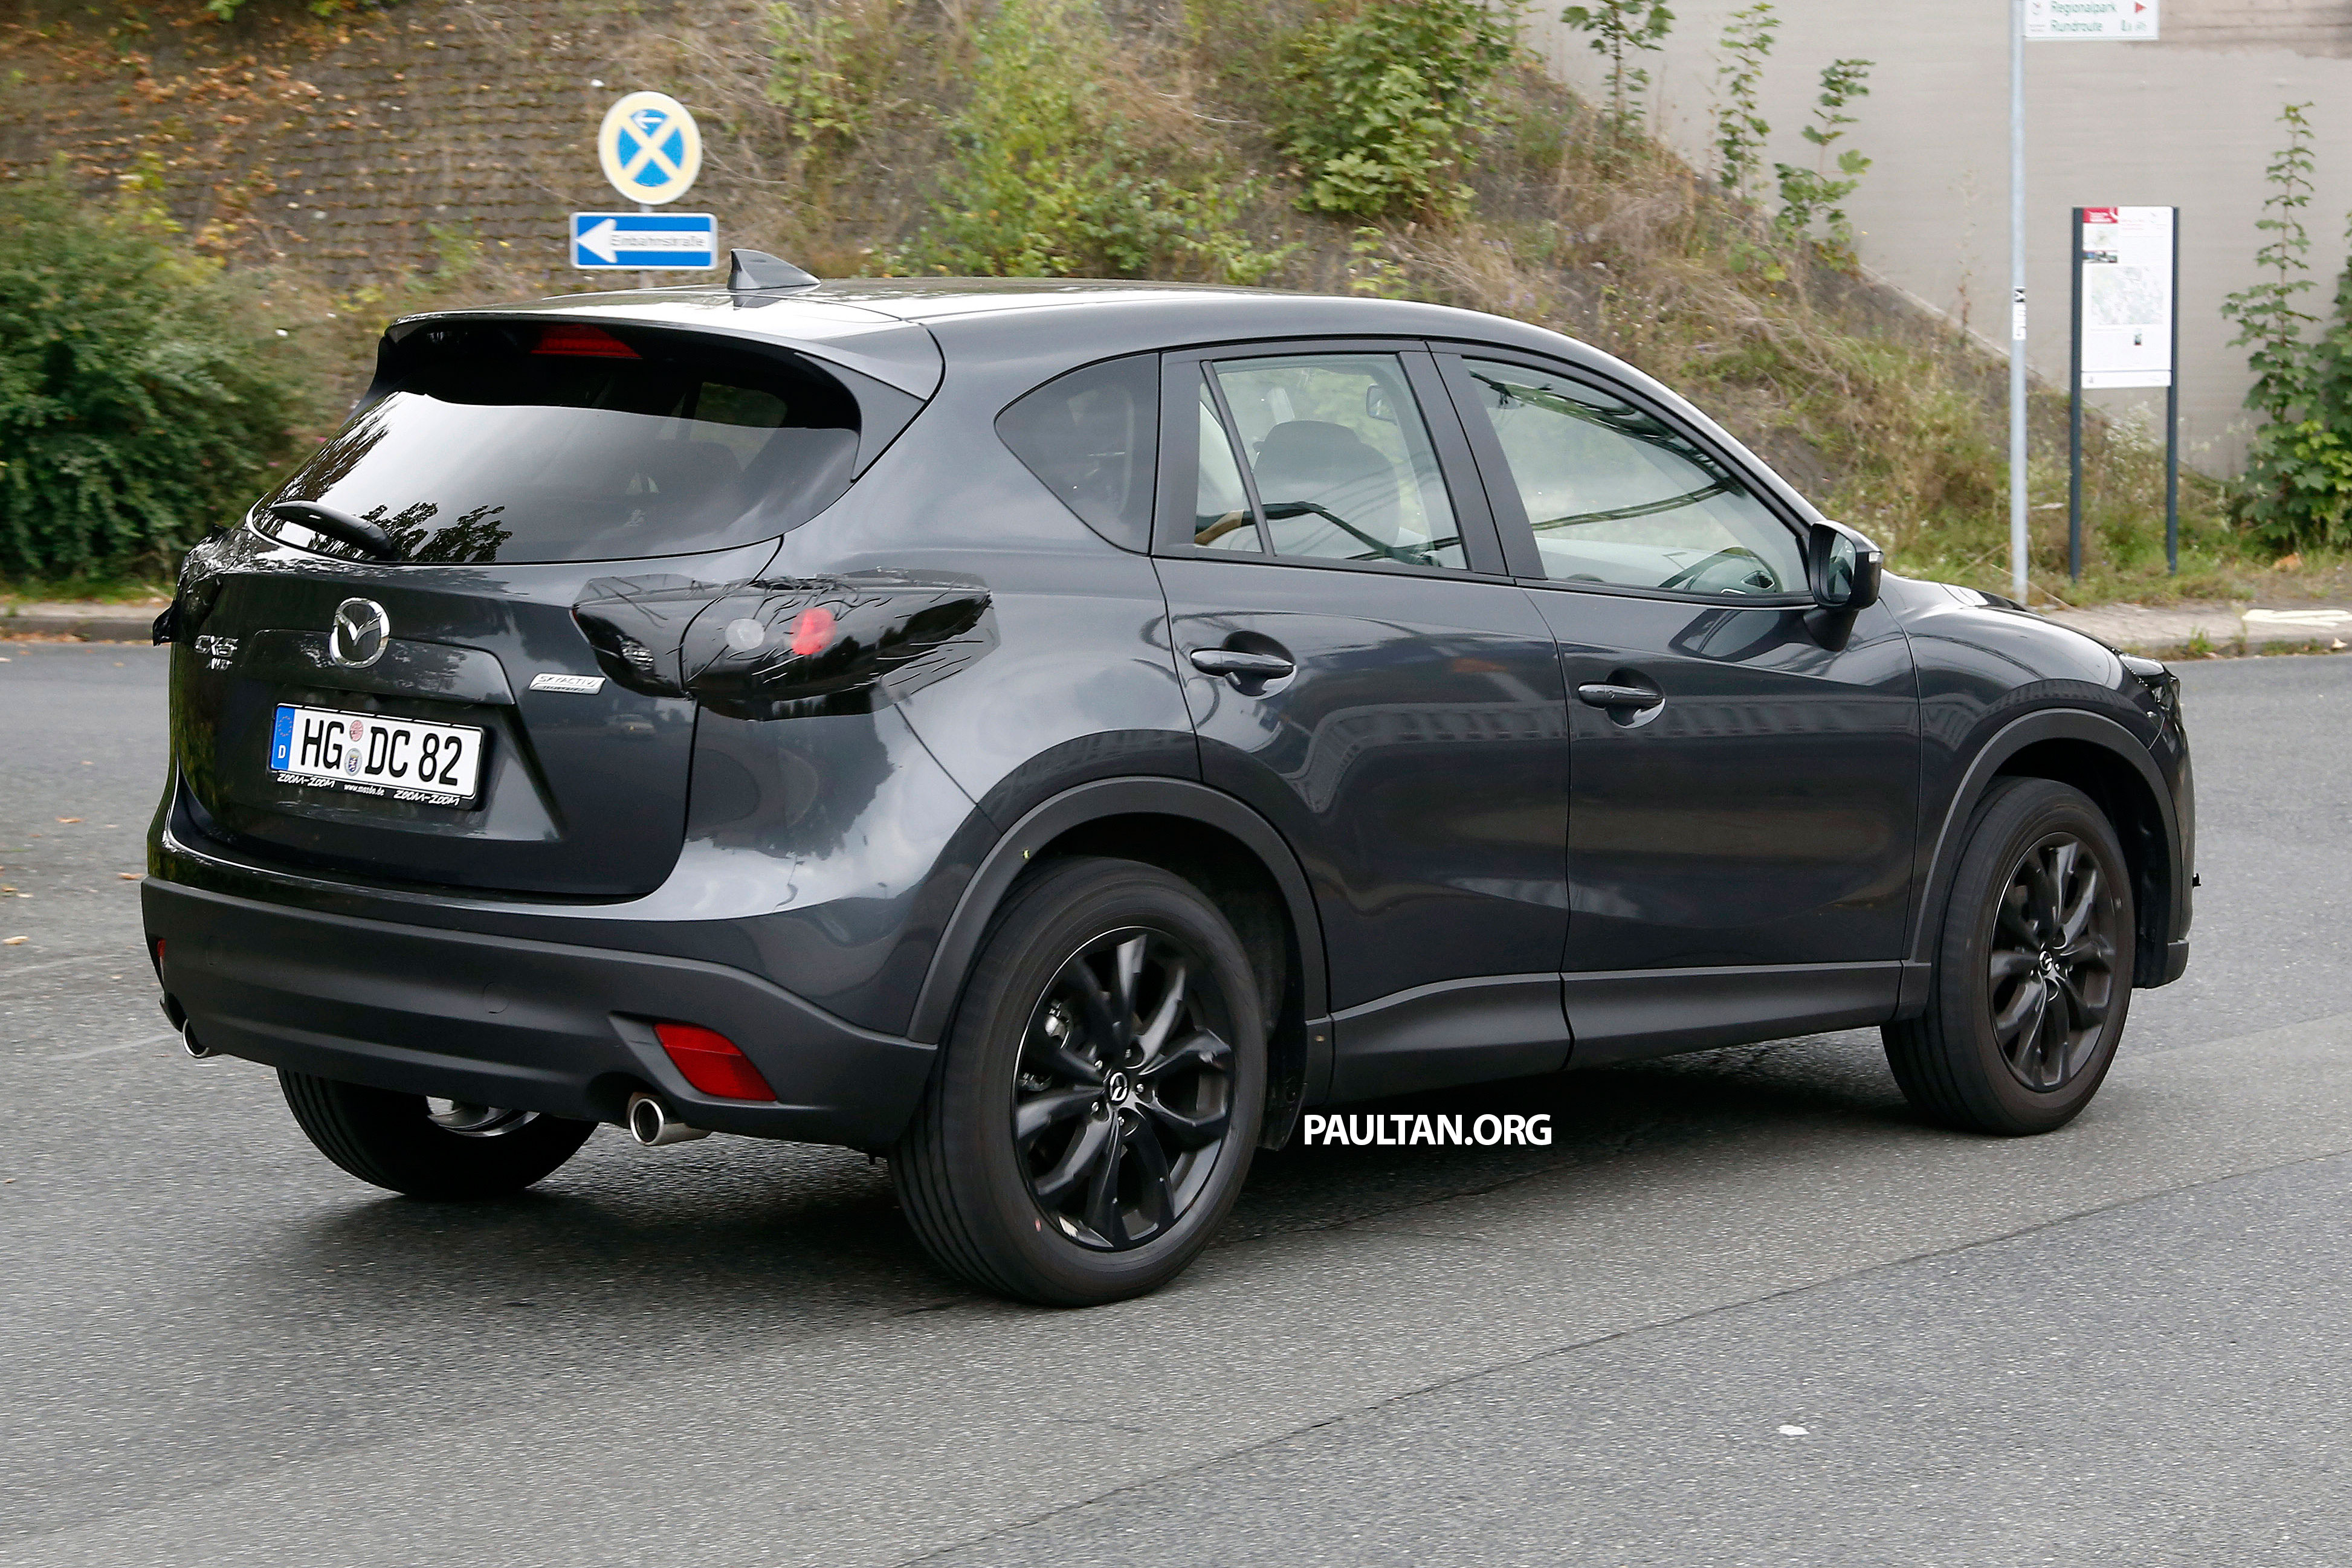 2018 Mazda Cx 5 >> SPYSHOTS: Mazda CX-5 facelift – new grille and lamps Paul Tan - Image 271084